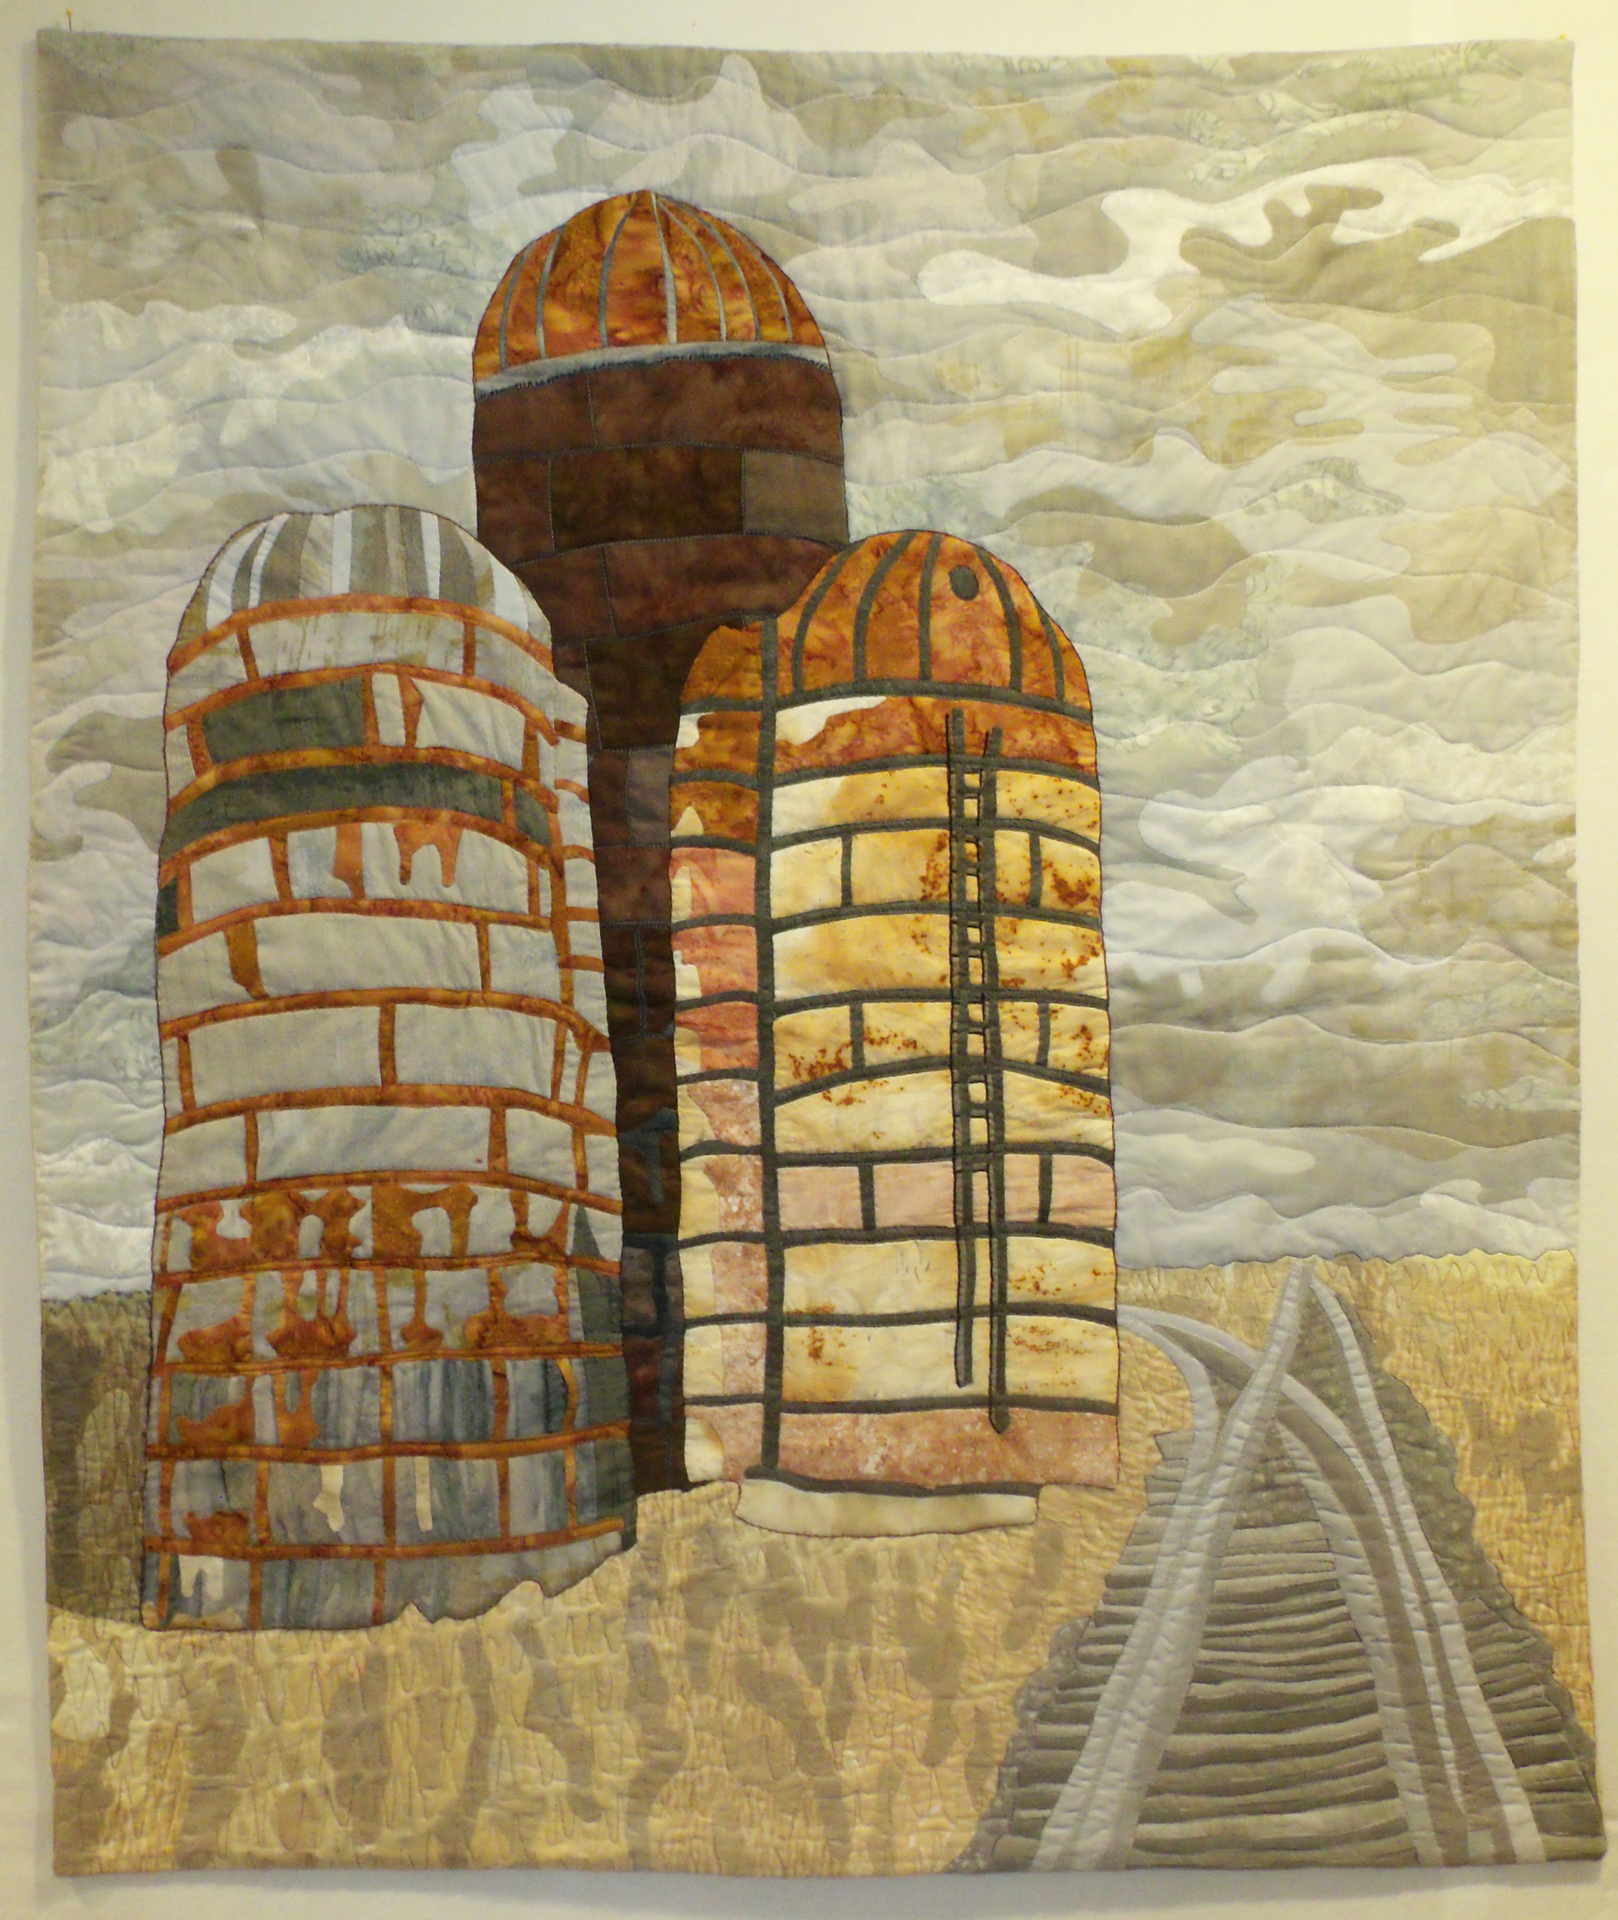 Bev Haring, Parched Earth: The Silos